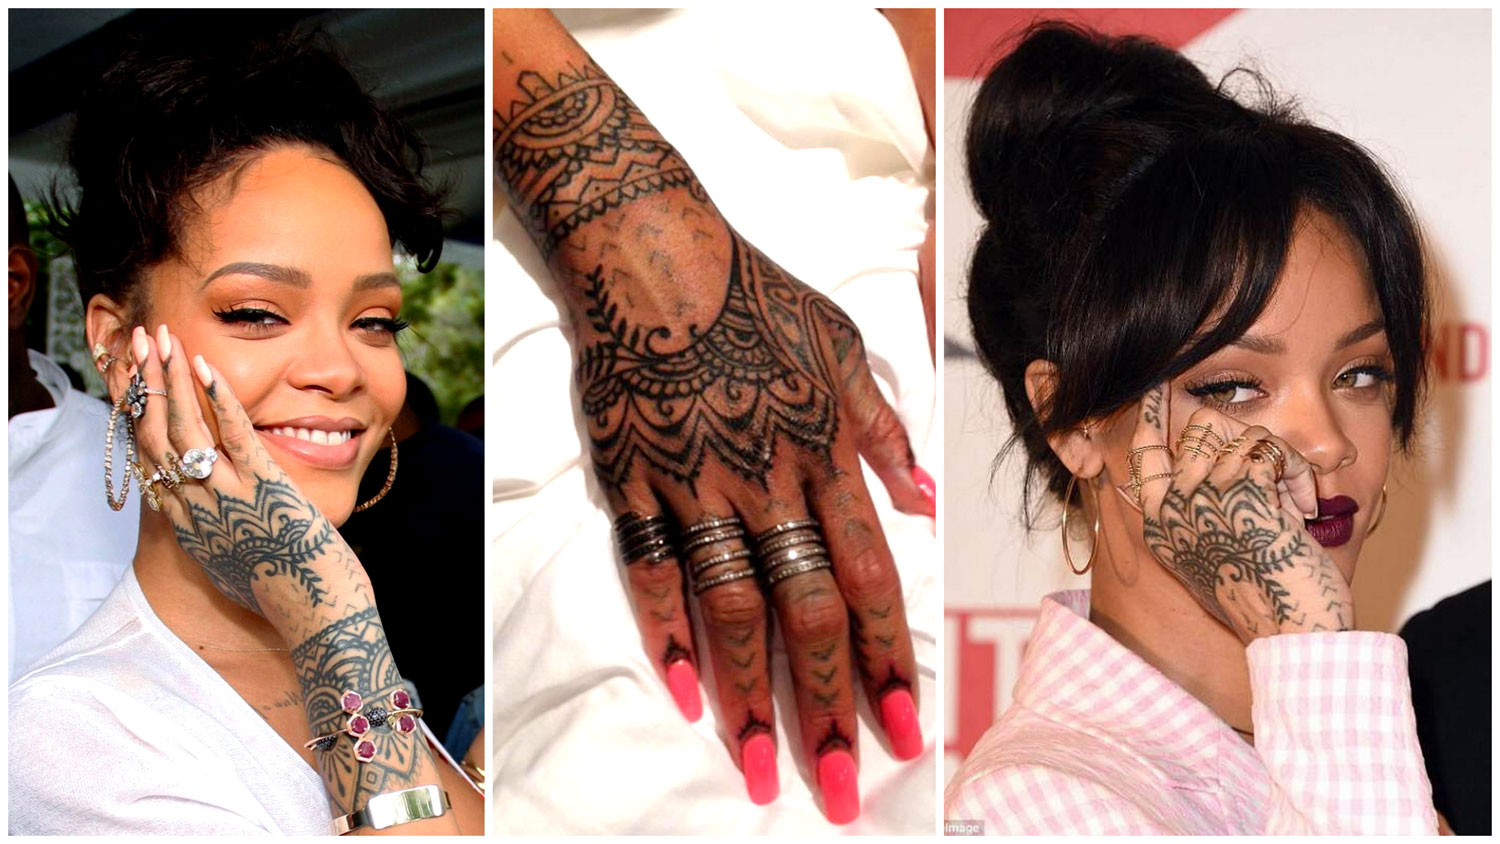 Best Rihanna Tattoo Henna Design - Most Popular Mehndi Design inspired by Rihanna Tattoo - Henna Design version of Rihannas Real Hand Tattoo - Mehendi Design on Hand like Rihanna Tattoo - Best Indian Henna Mehndi Inspired Celebrity Real Tattoos